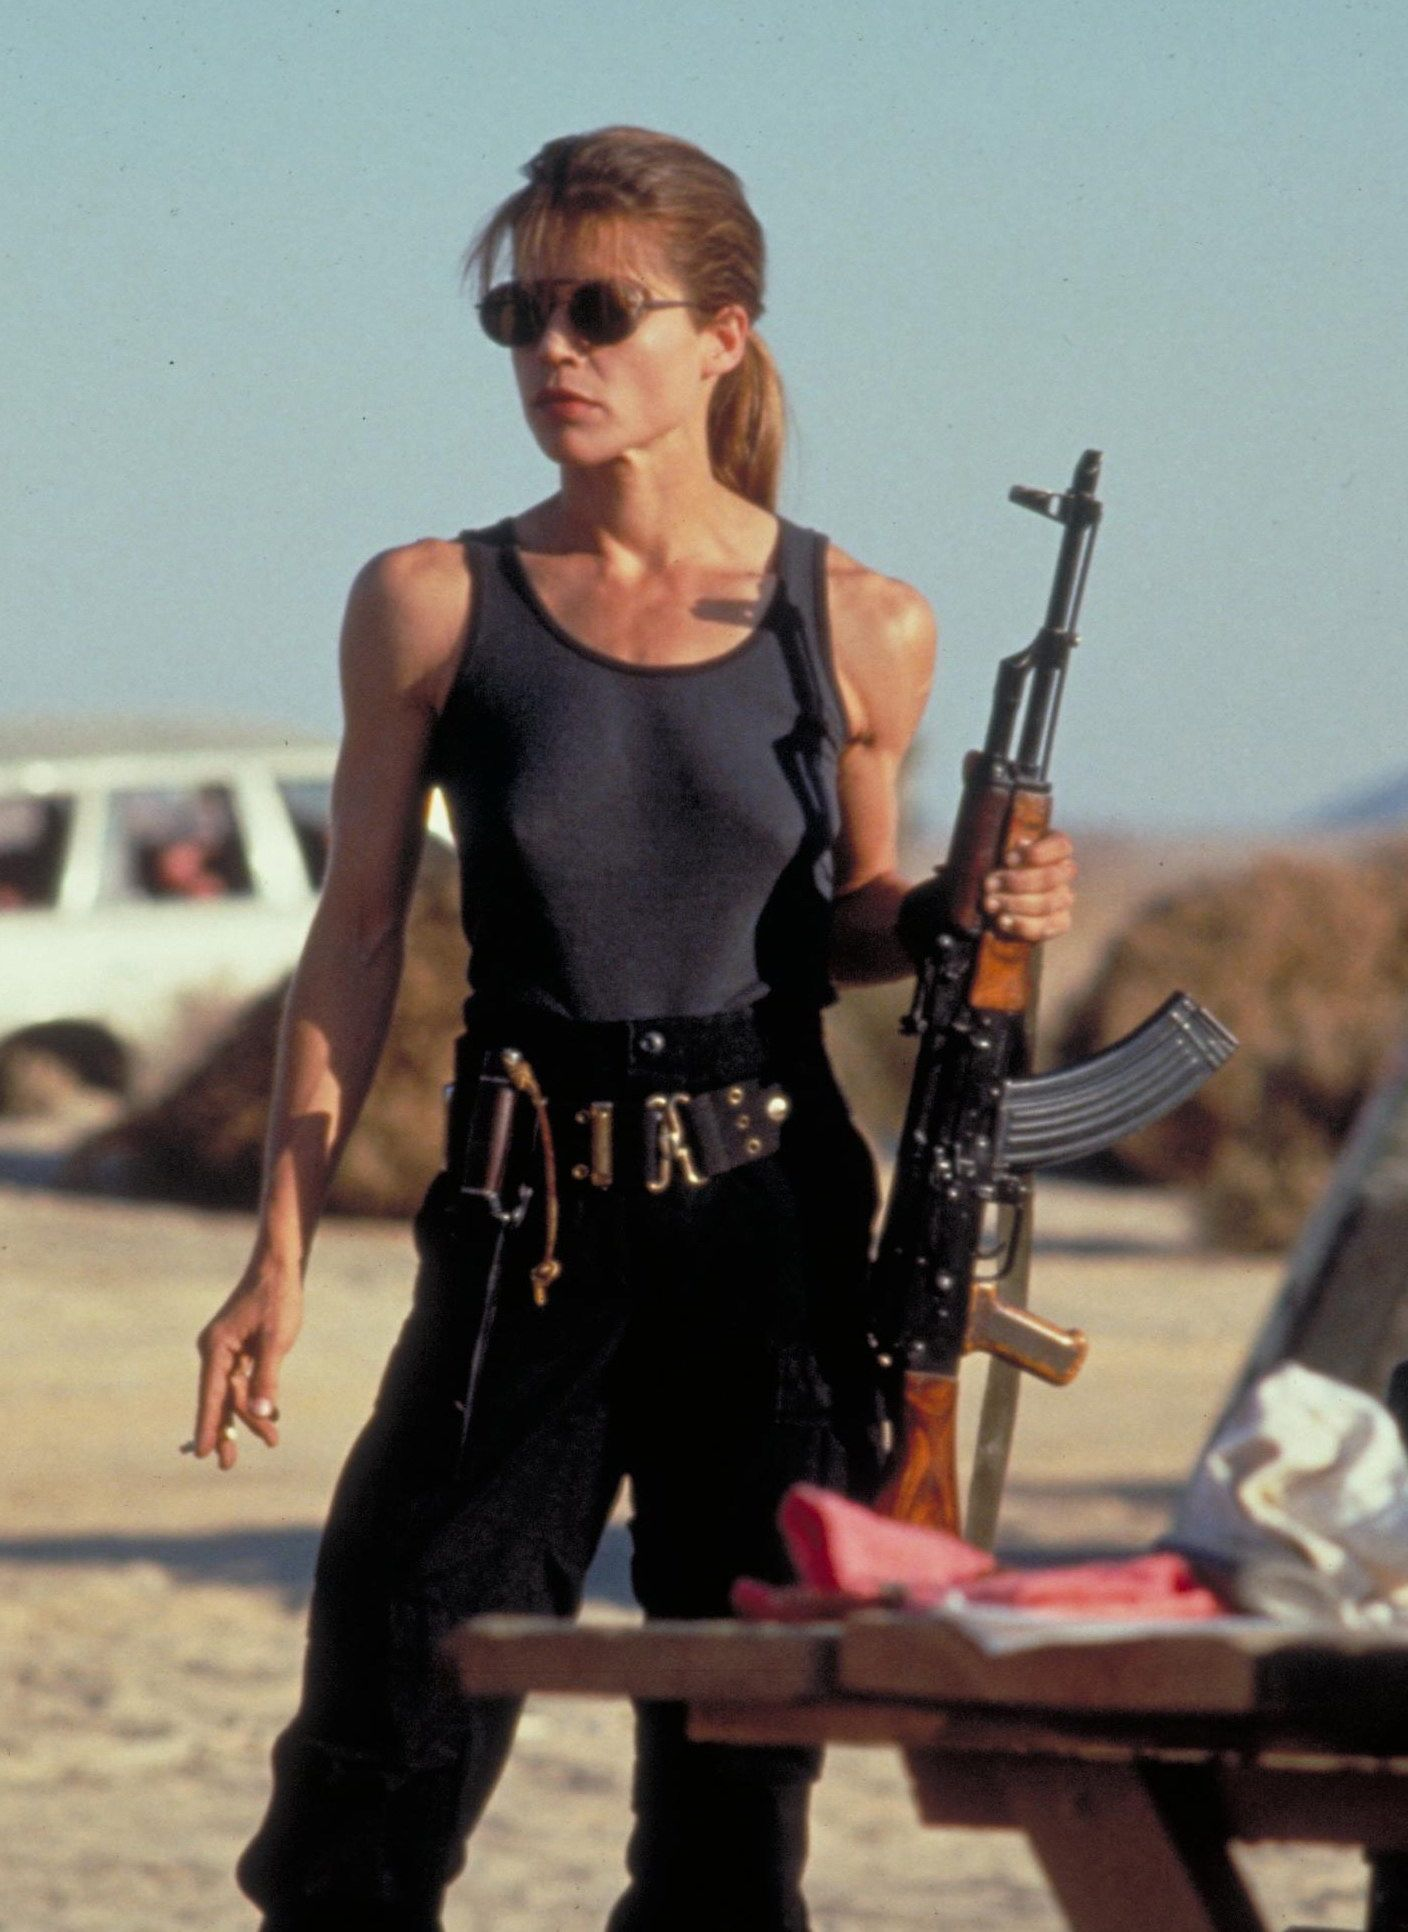 Linda Hamilton Ass nude (68 photos), Hot Celebrites pic